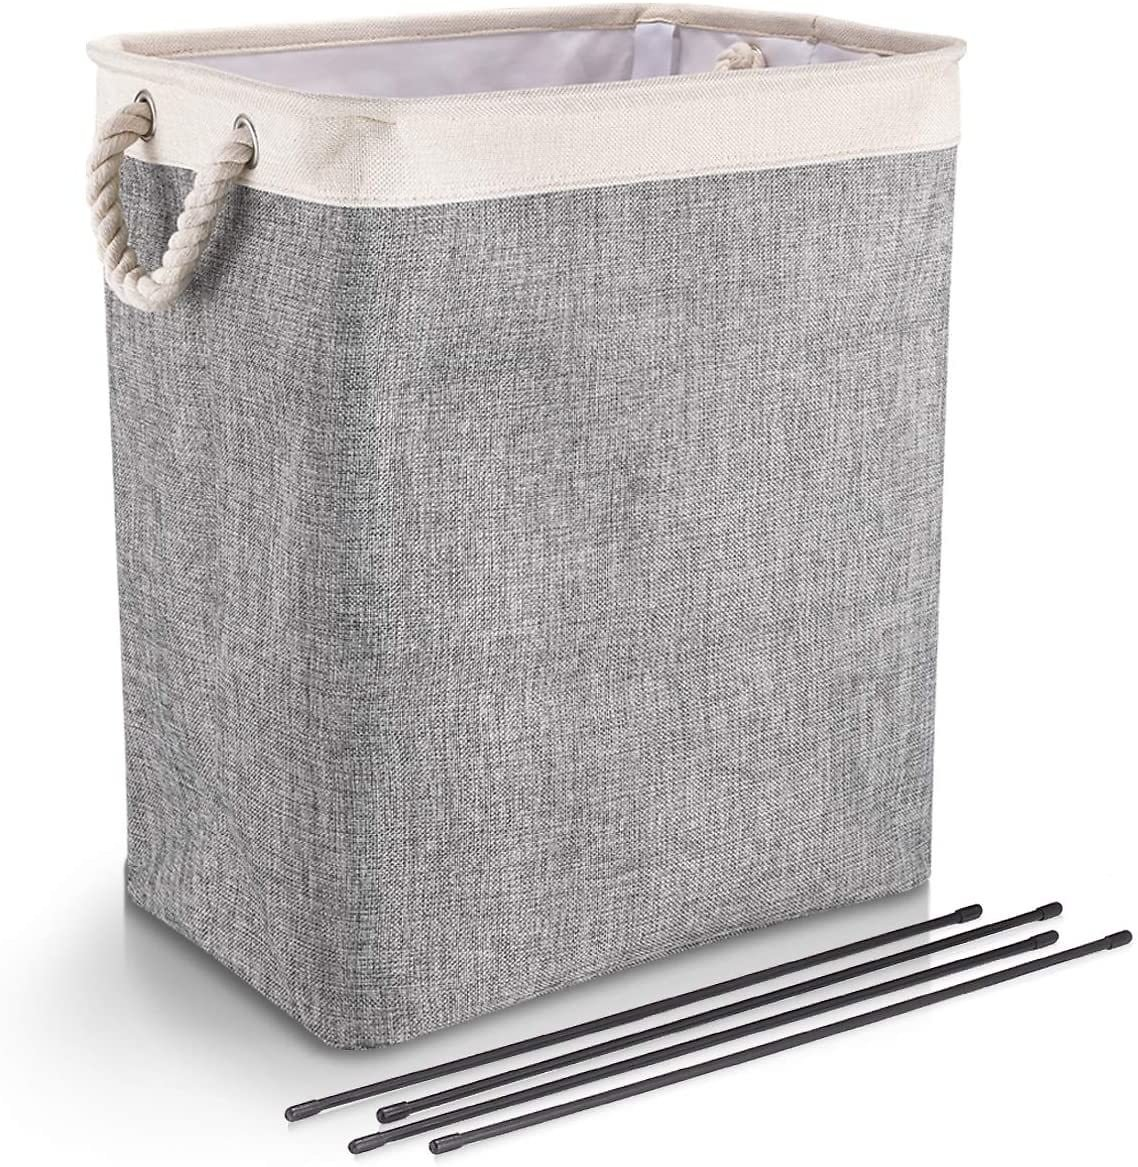 DYD Laundry Baskets with Handles Collapsible Linen Hampers for Bedroom Storage Built-in Lining with Detachable Brackets Well-Holding Foldable Laundry Hamper for Toys Clothing Organization